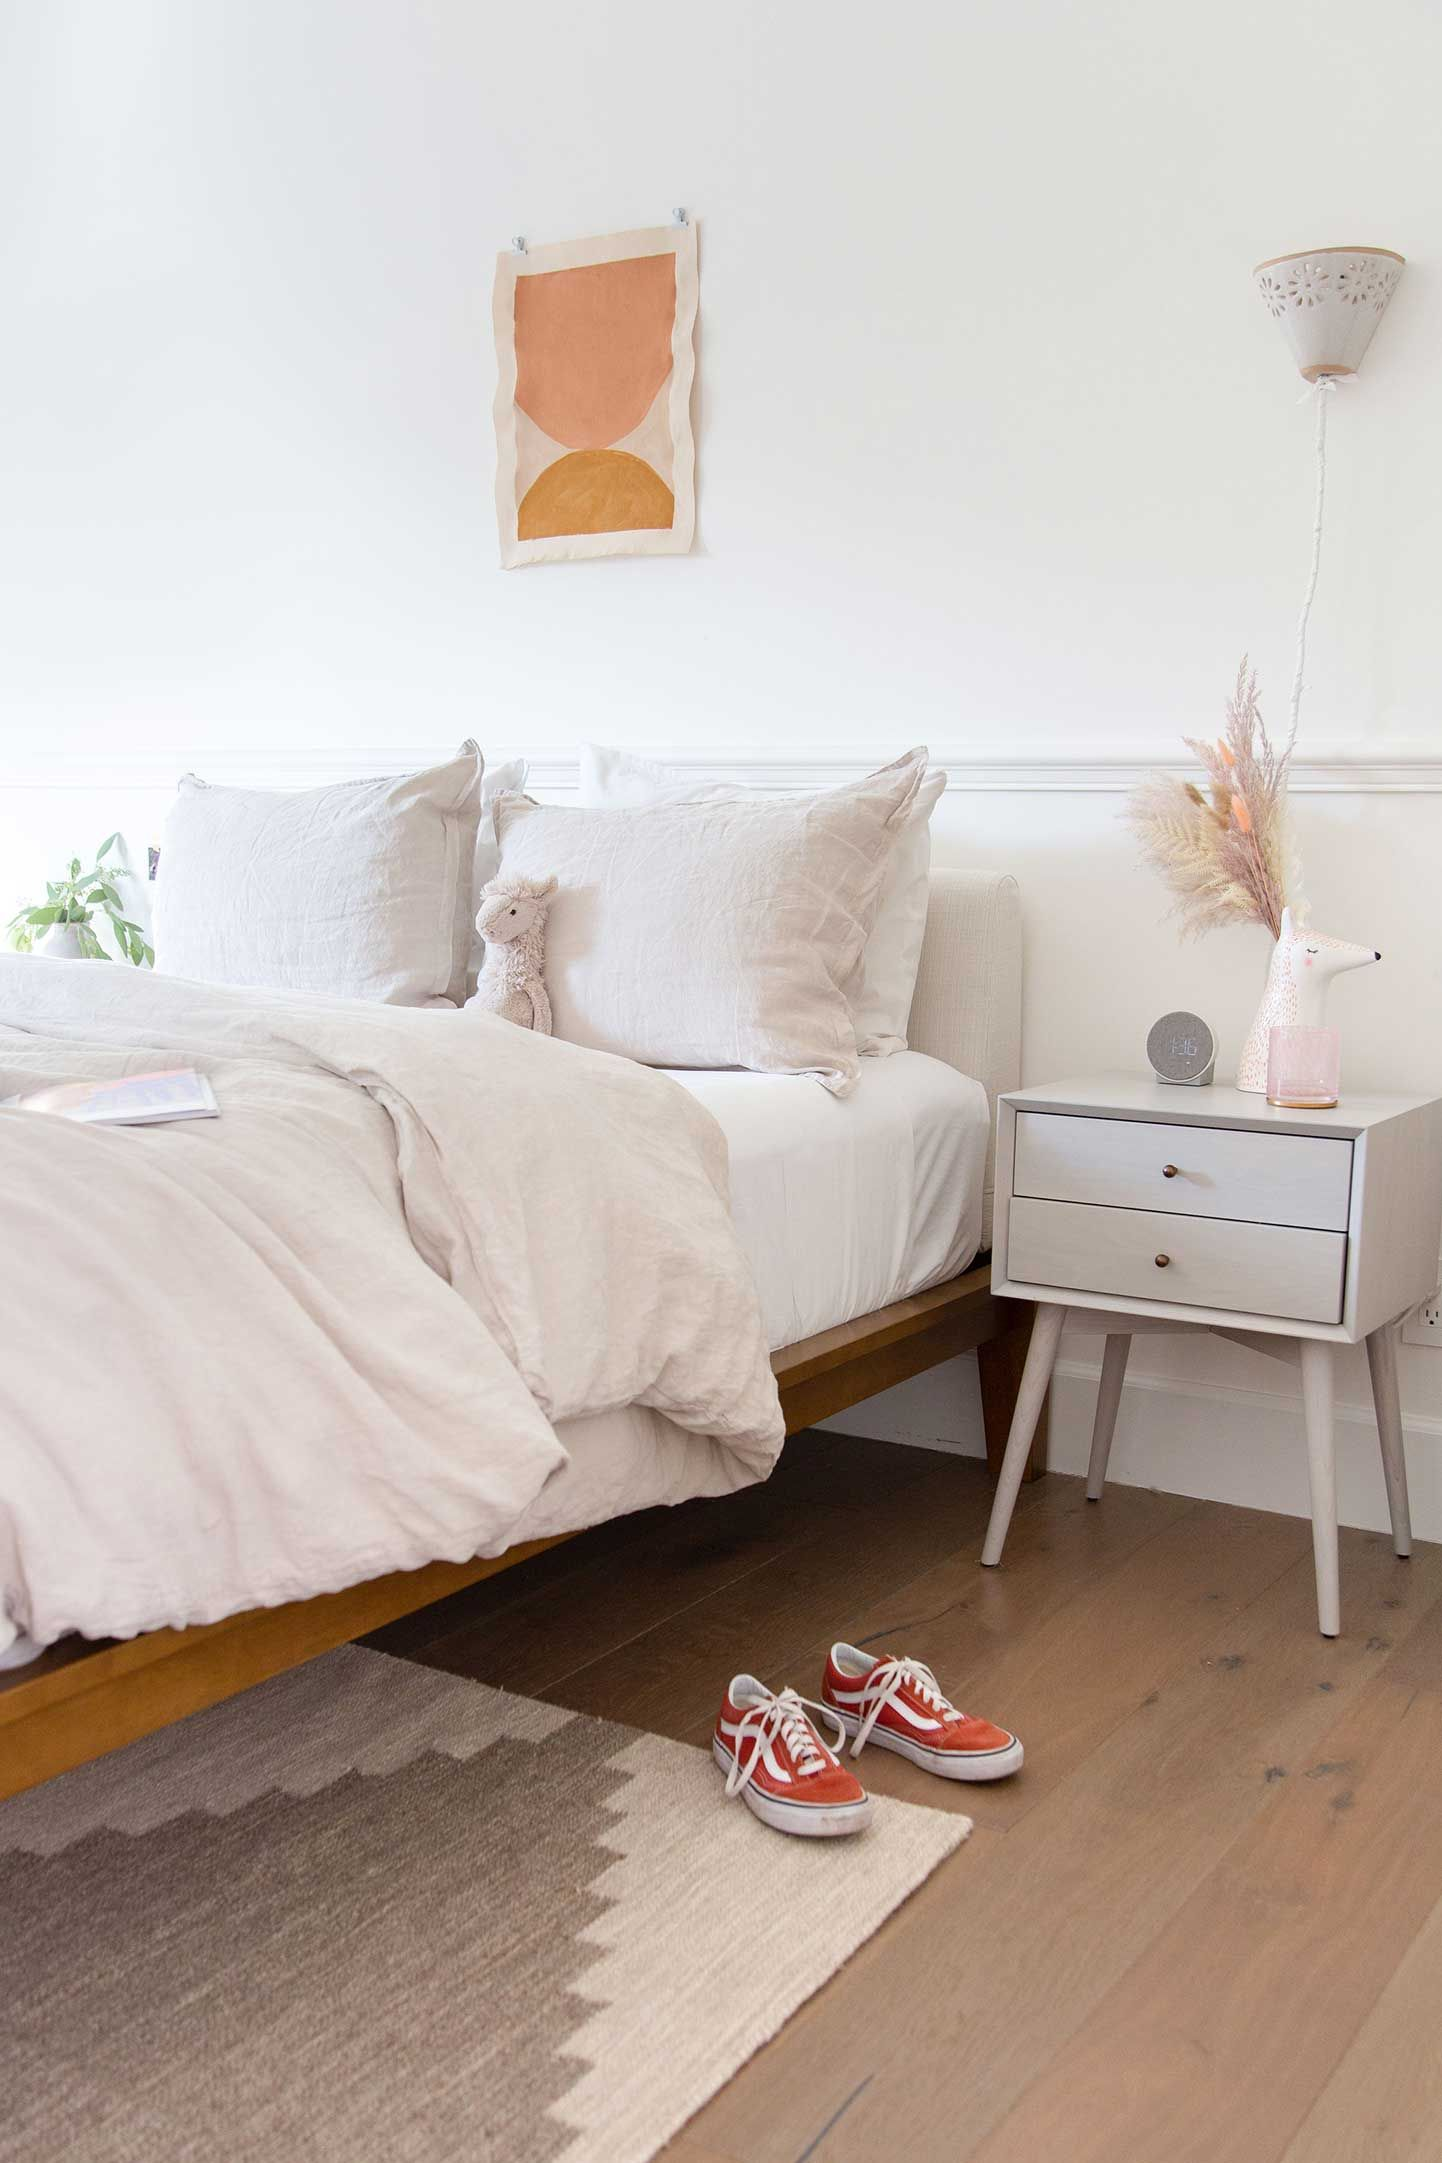 The Bed in 2021   Small room design, Simple bedroom, Minimalist bed